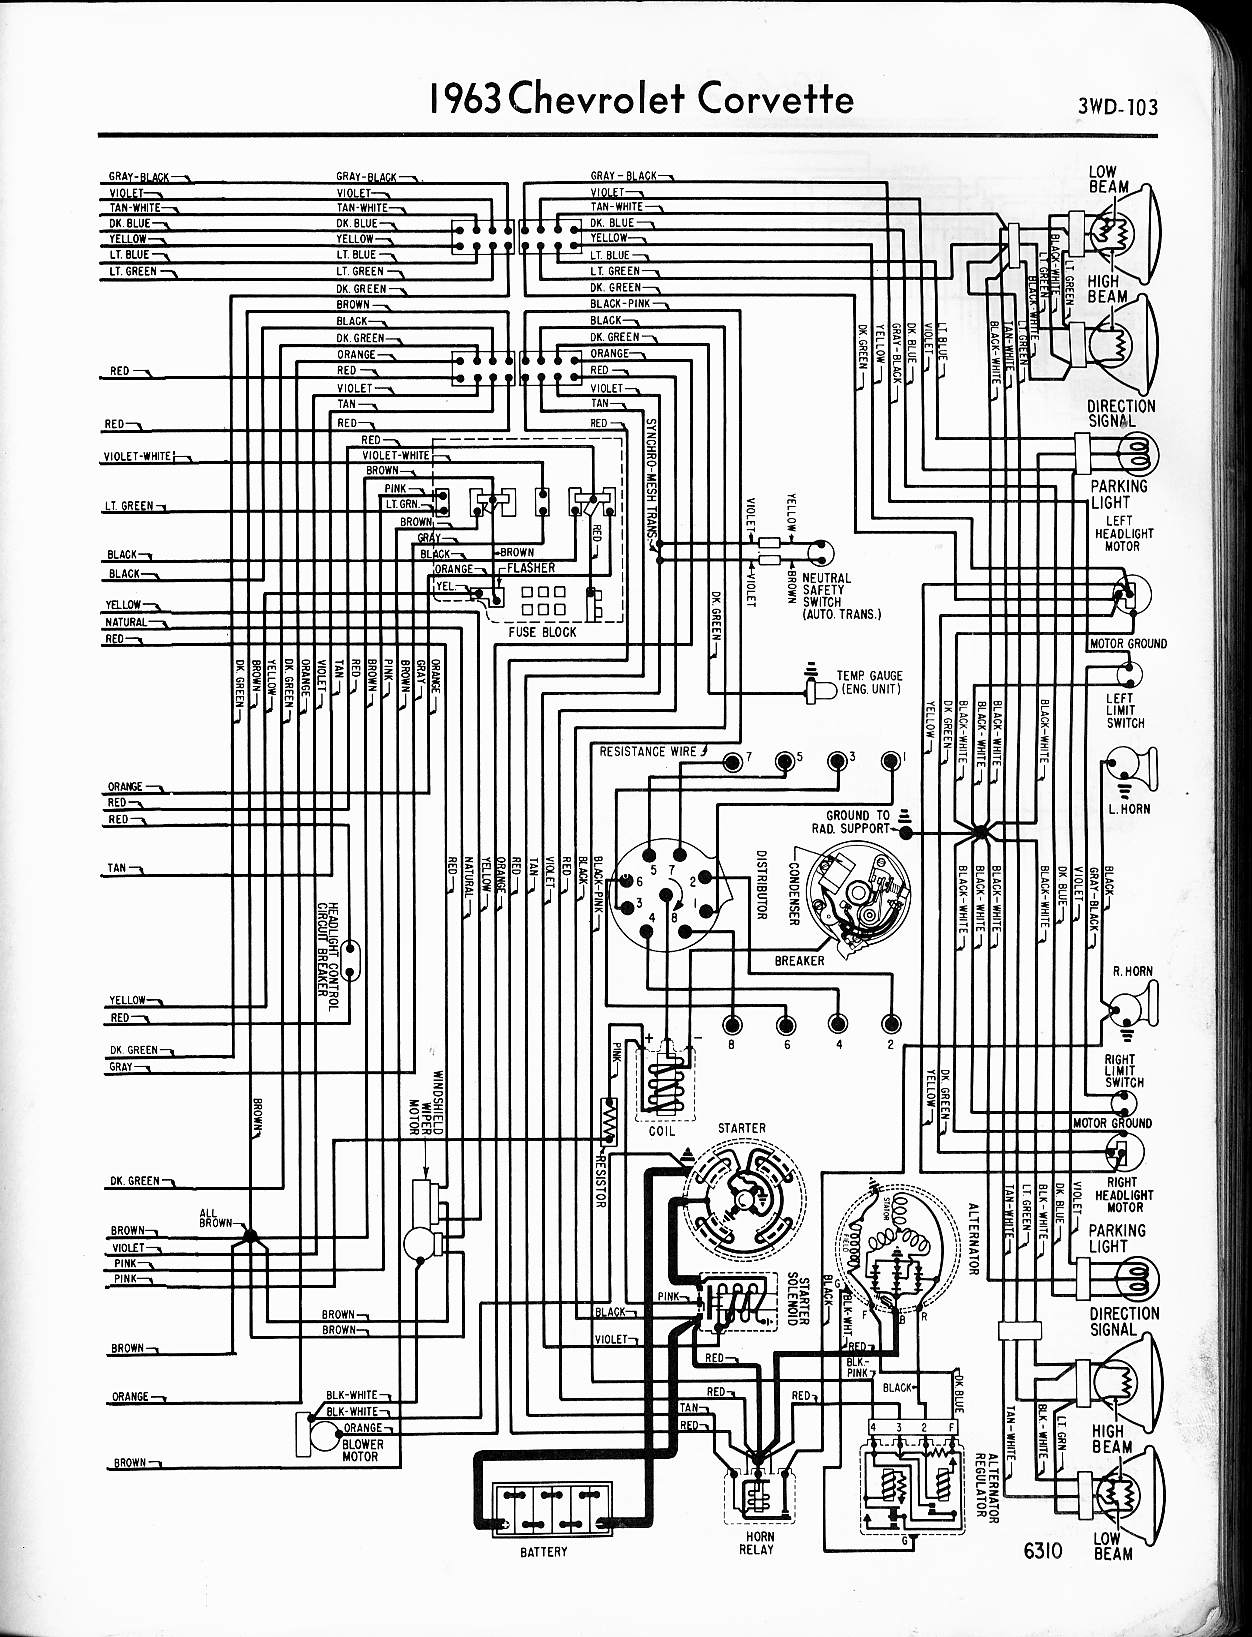 hight resolution of 1969 corvette wiring diagram coil data wiring diagram schema 80 corvette wiring diagram 1969 corvette wiring diagram coil